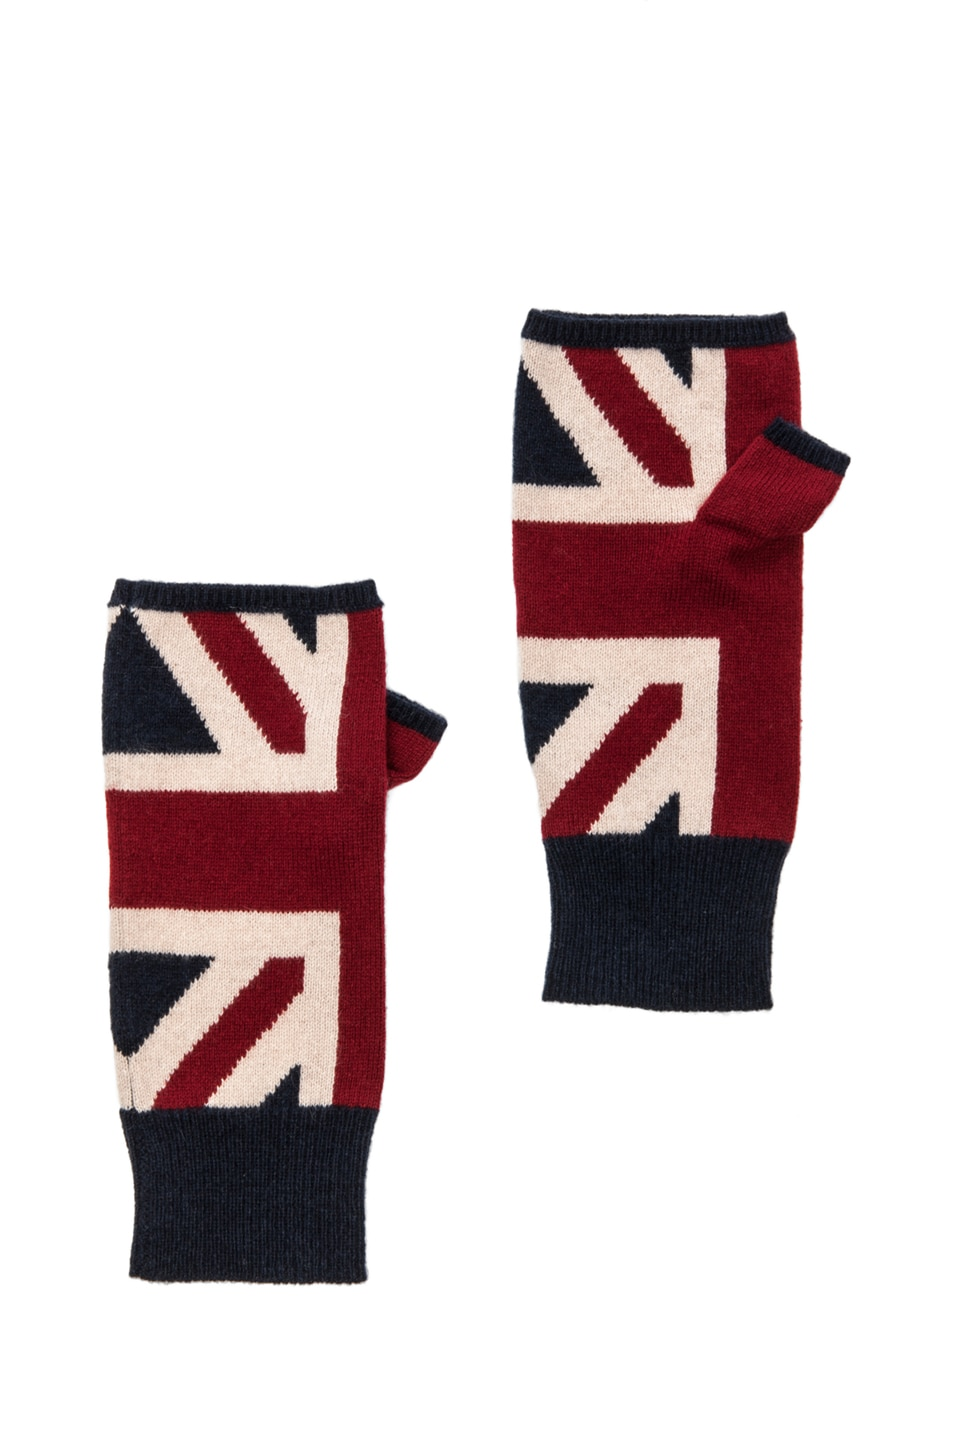 Autumn Cashmere Union Jack Fingerless Gloves in Traditional Combo